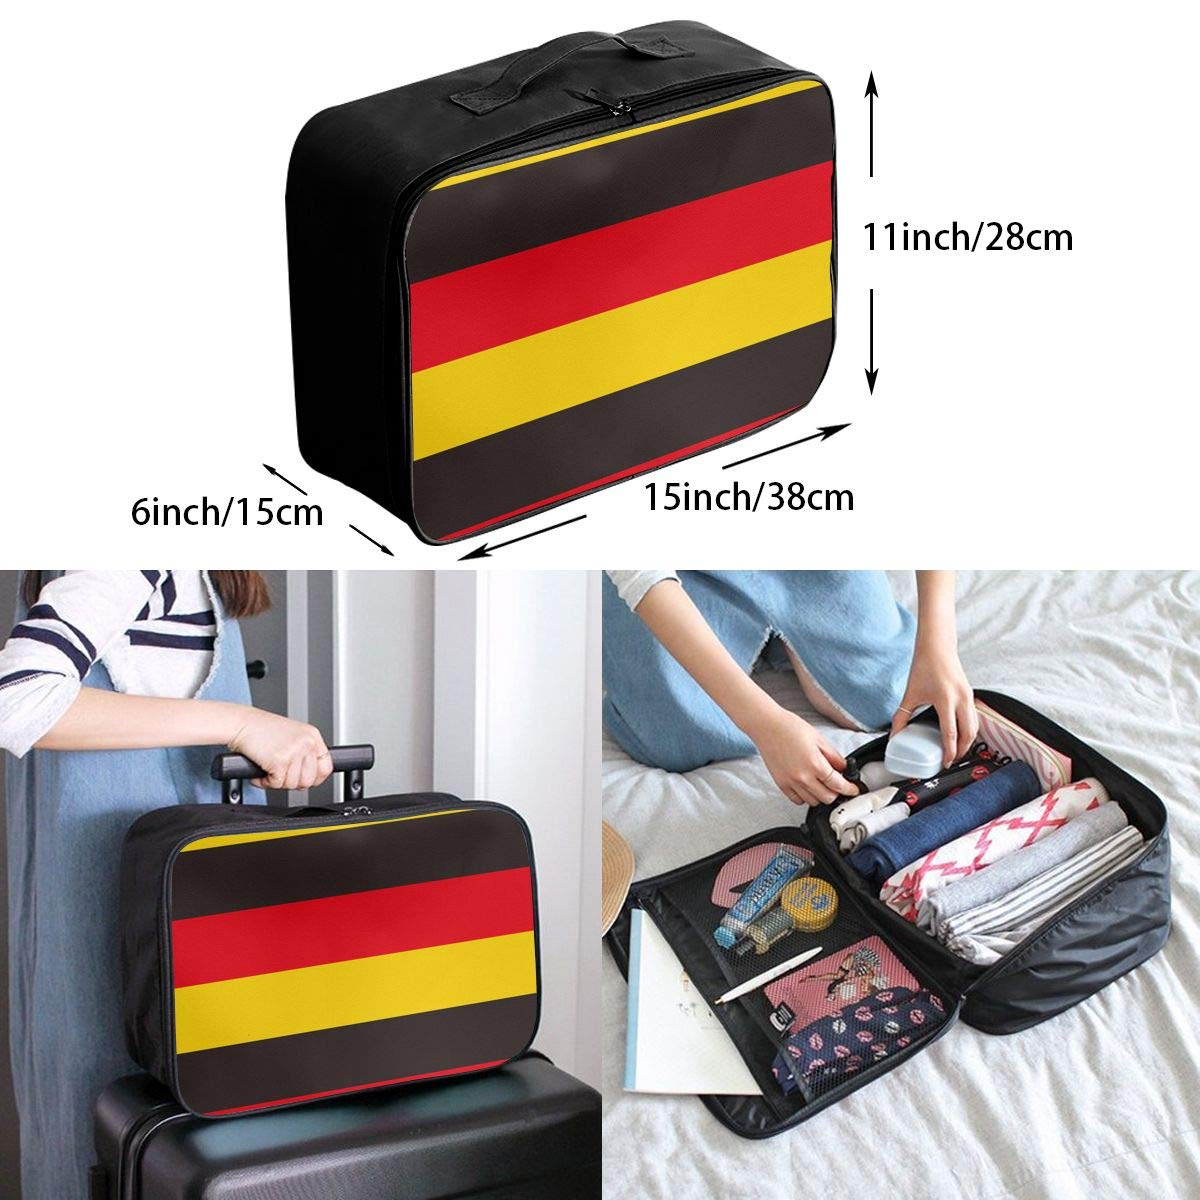 Casual Large Capacity Portable Luggage Bag Suitcase Storage Bag Luggage Packing Tote Bag Germany Flag Repeat Travel Duffel Bag Weekend Trip